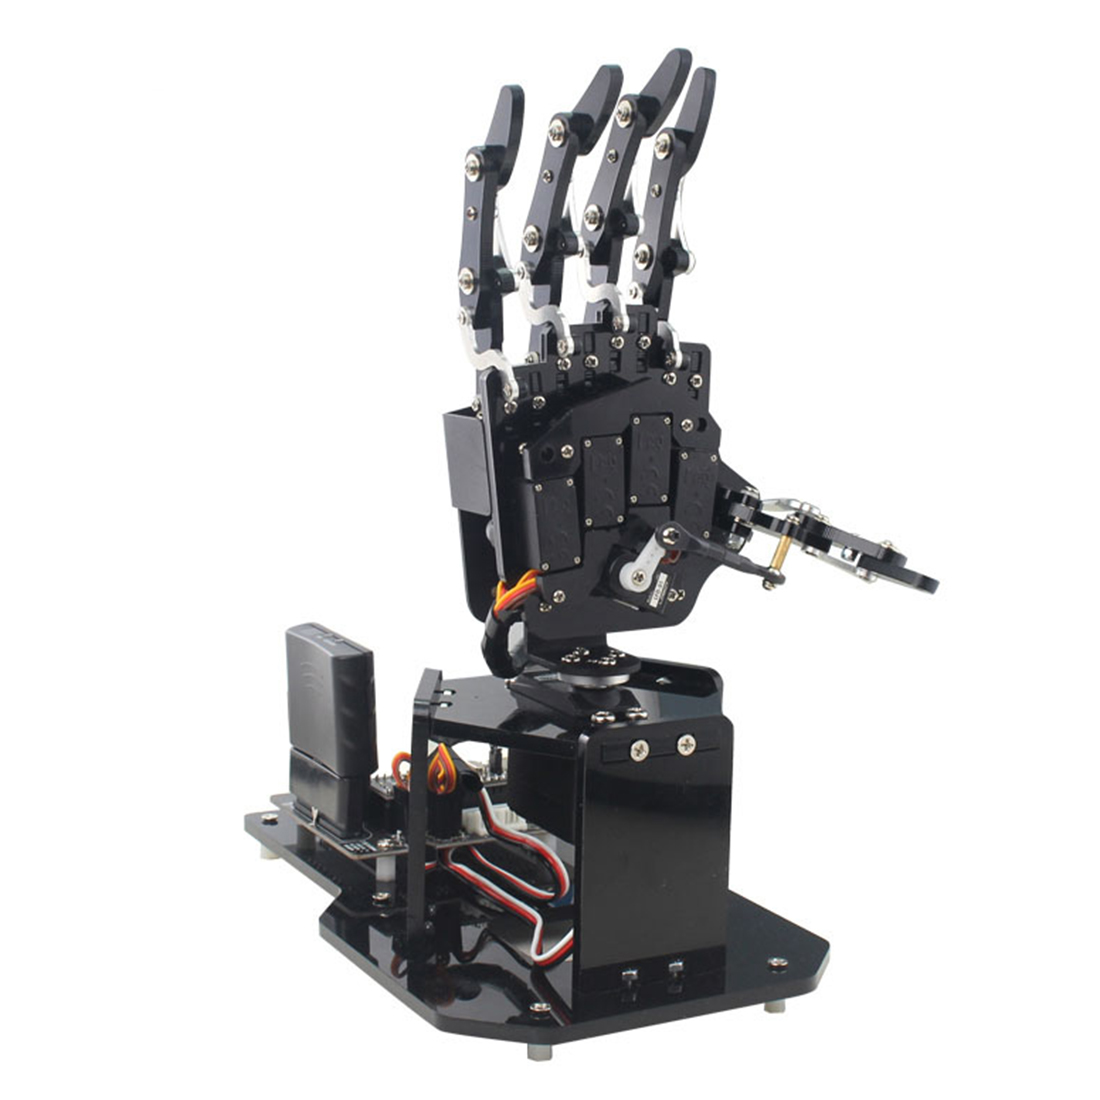 Open Source Robot Palm Bionic Mechanical Palm Sense Maker For Arduino Programmable Toys